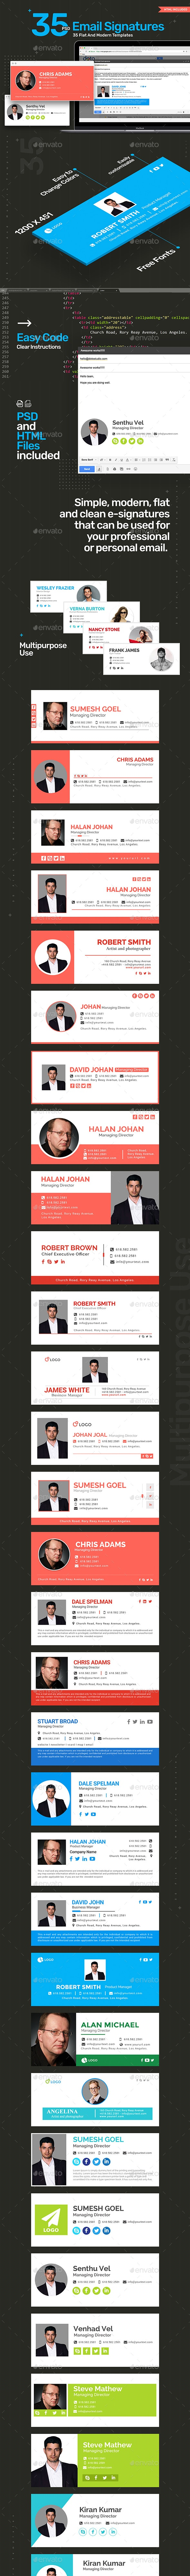 Email Signature - 35 Templates - Updated! - Miscellaneous Web Elements